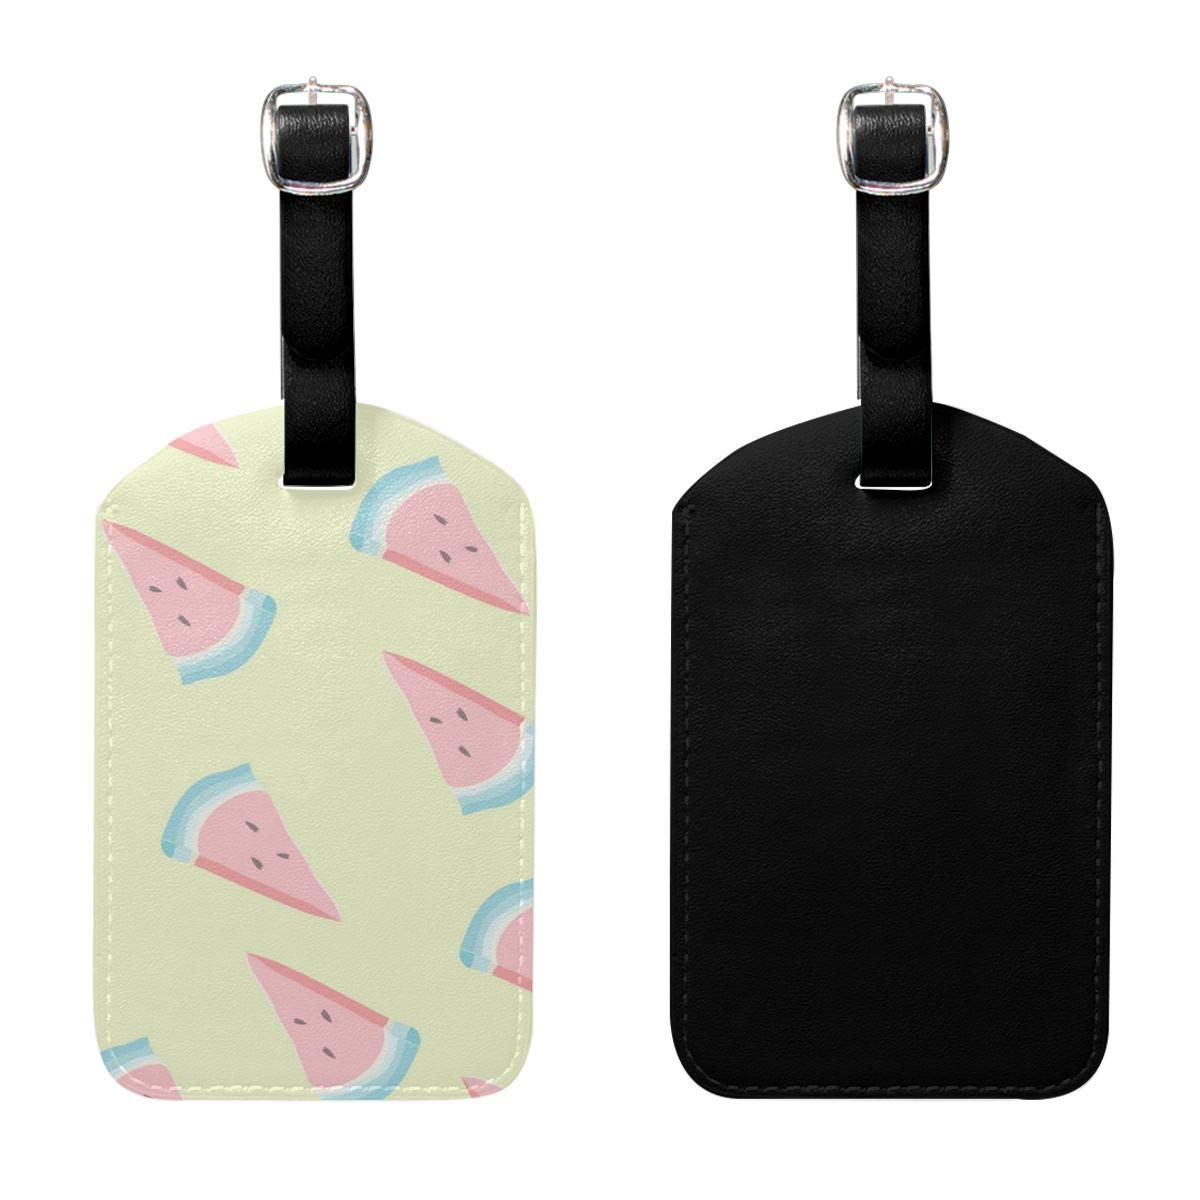 PU Leather Travel Luggage Tags Bone Luggage Tag Label Bags Case 2 Set